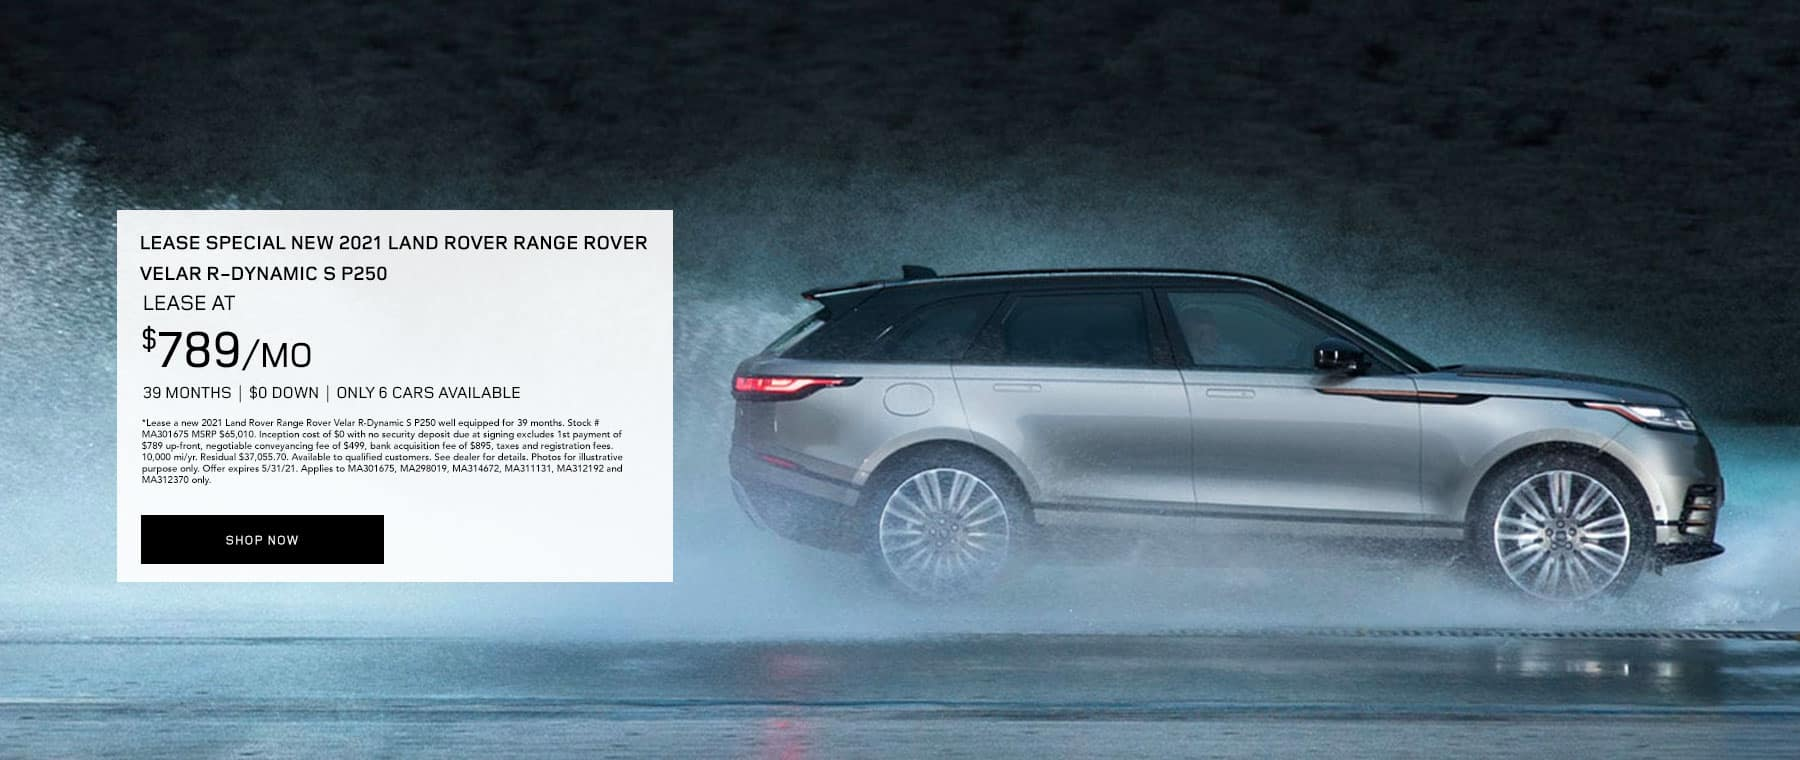 COURTESY VEHICLE LEASE SPECIAL 2020 Land Rover Range Rover Velar R-Dynamic S P250 – only 1 car available LEASE AT $699 PER MONTH FOR 39 MONTHS $0 DOWN